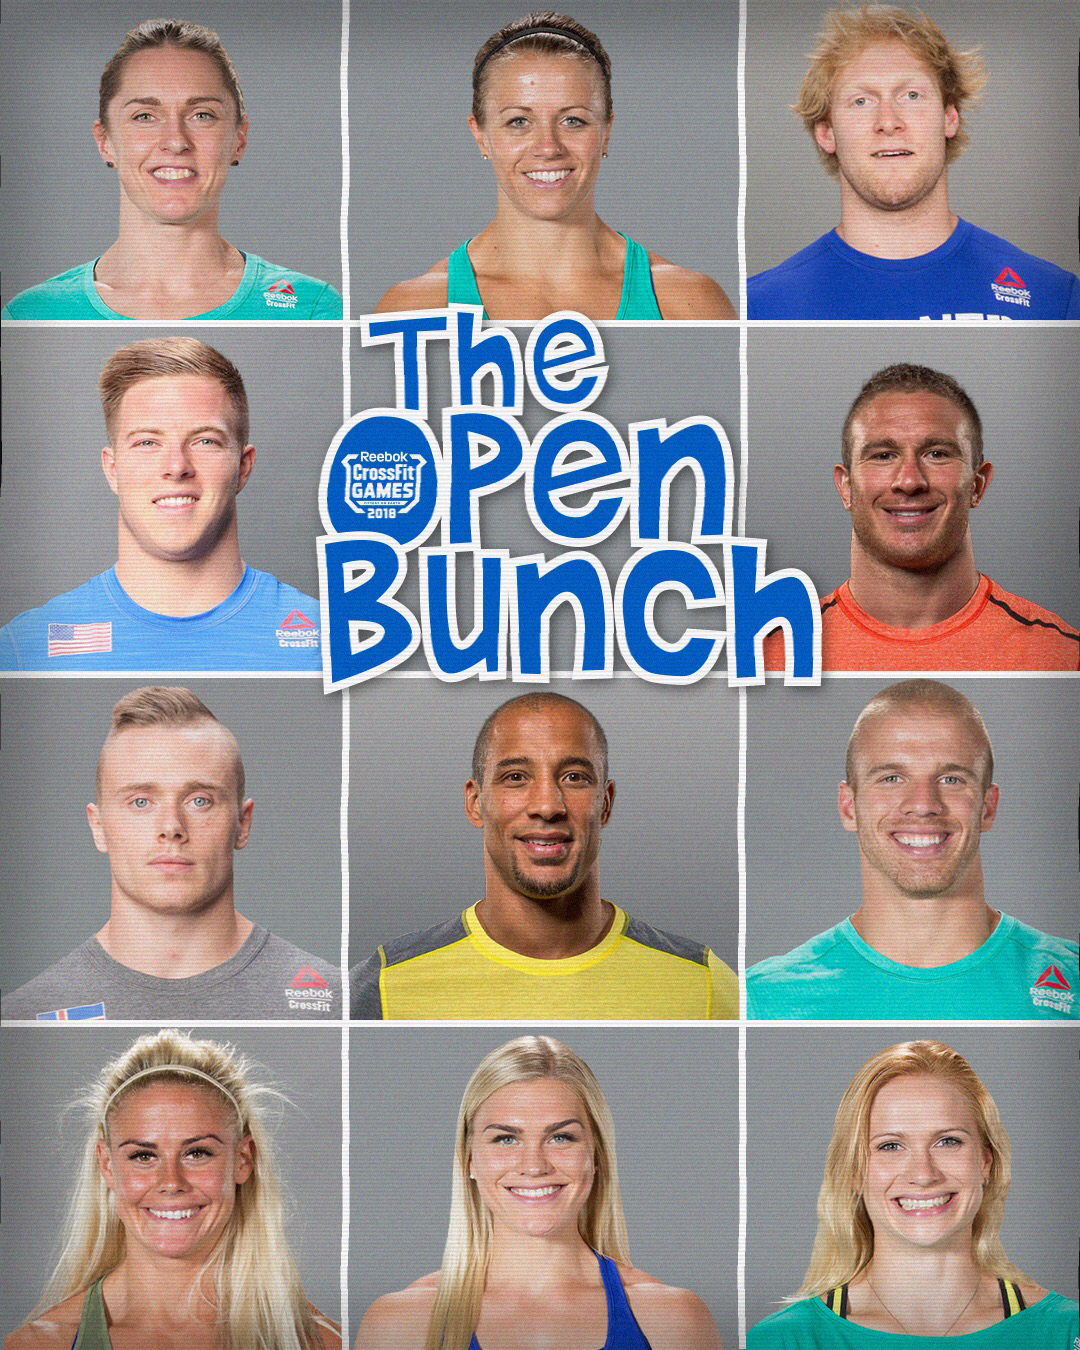 The Open Bunch